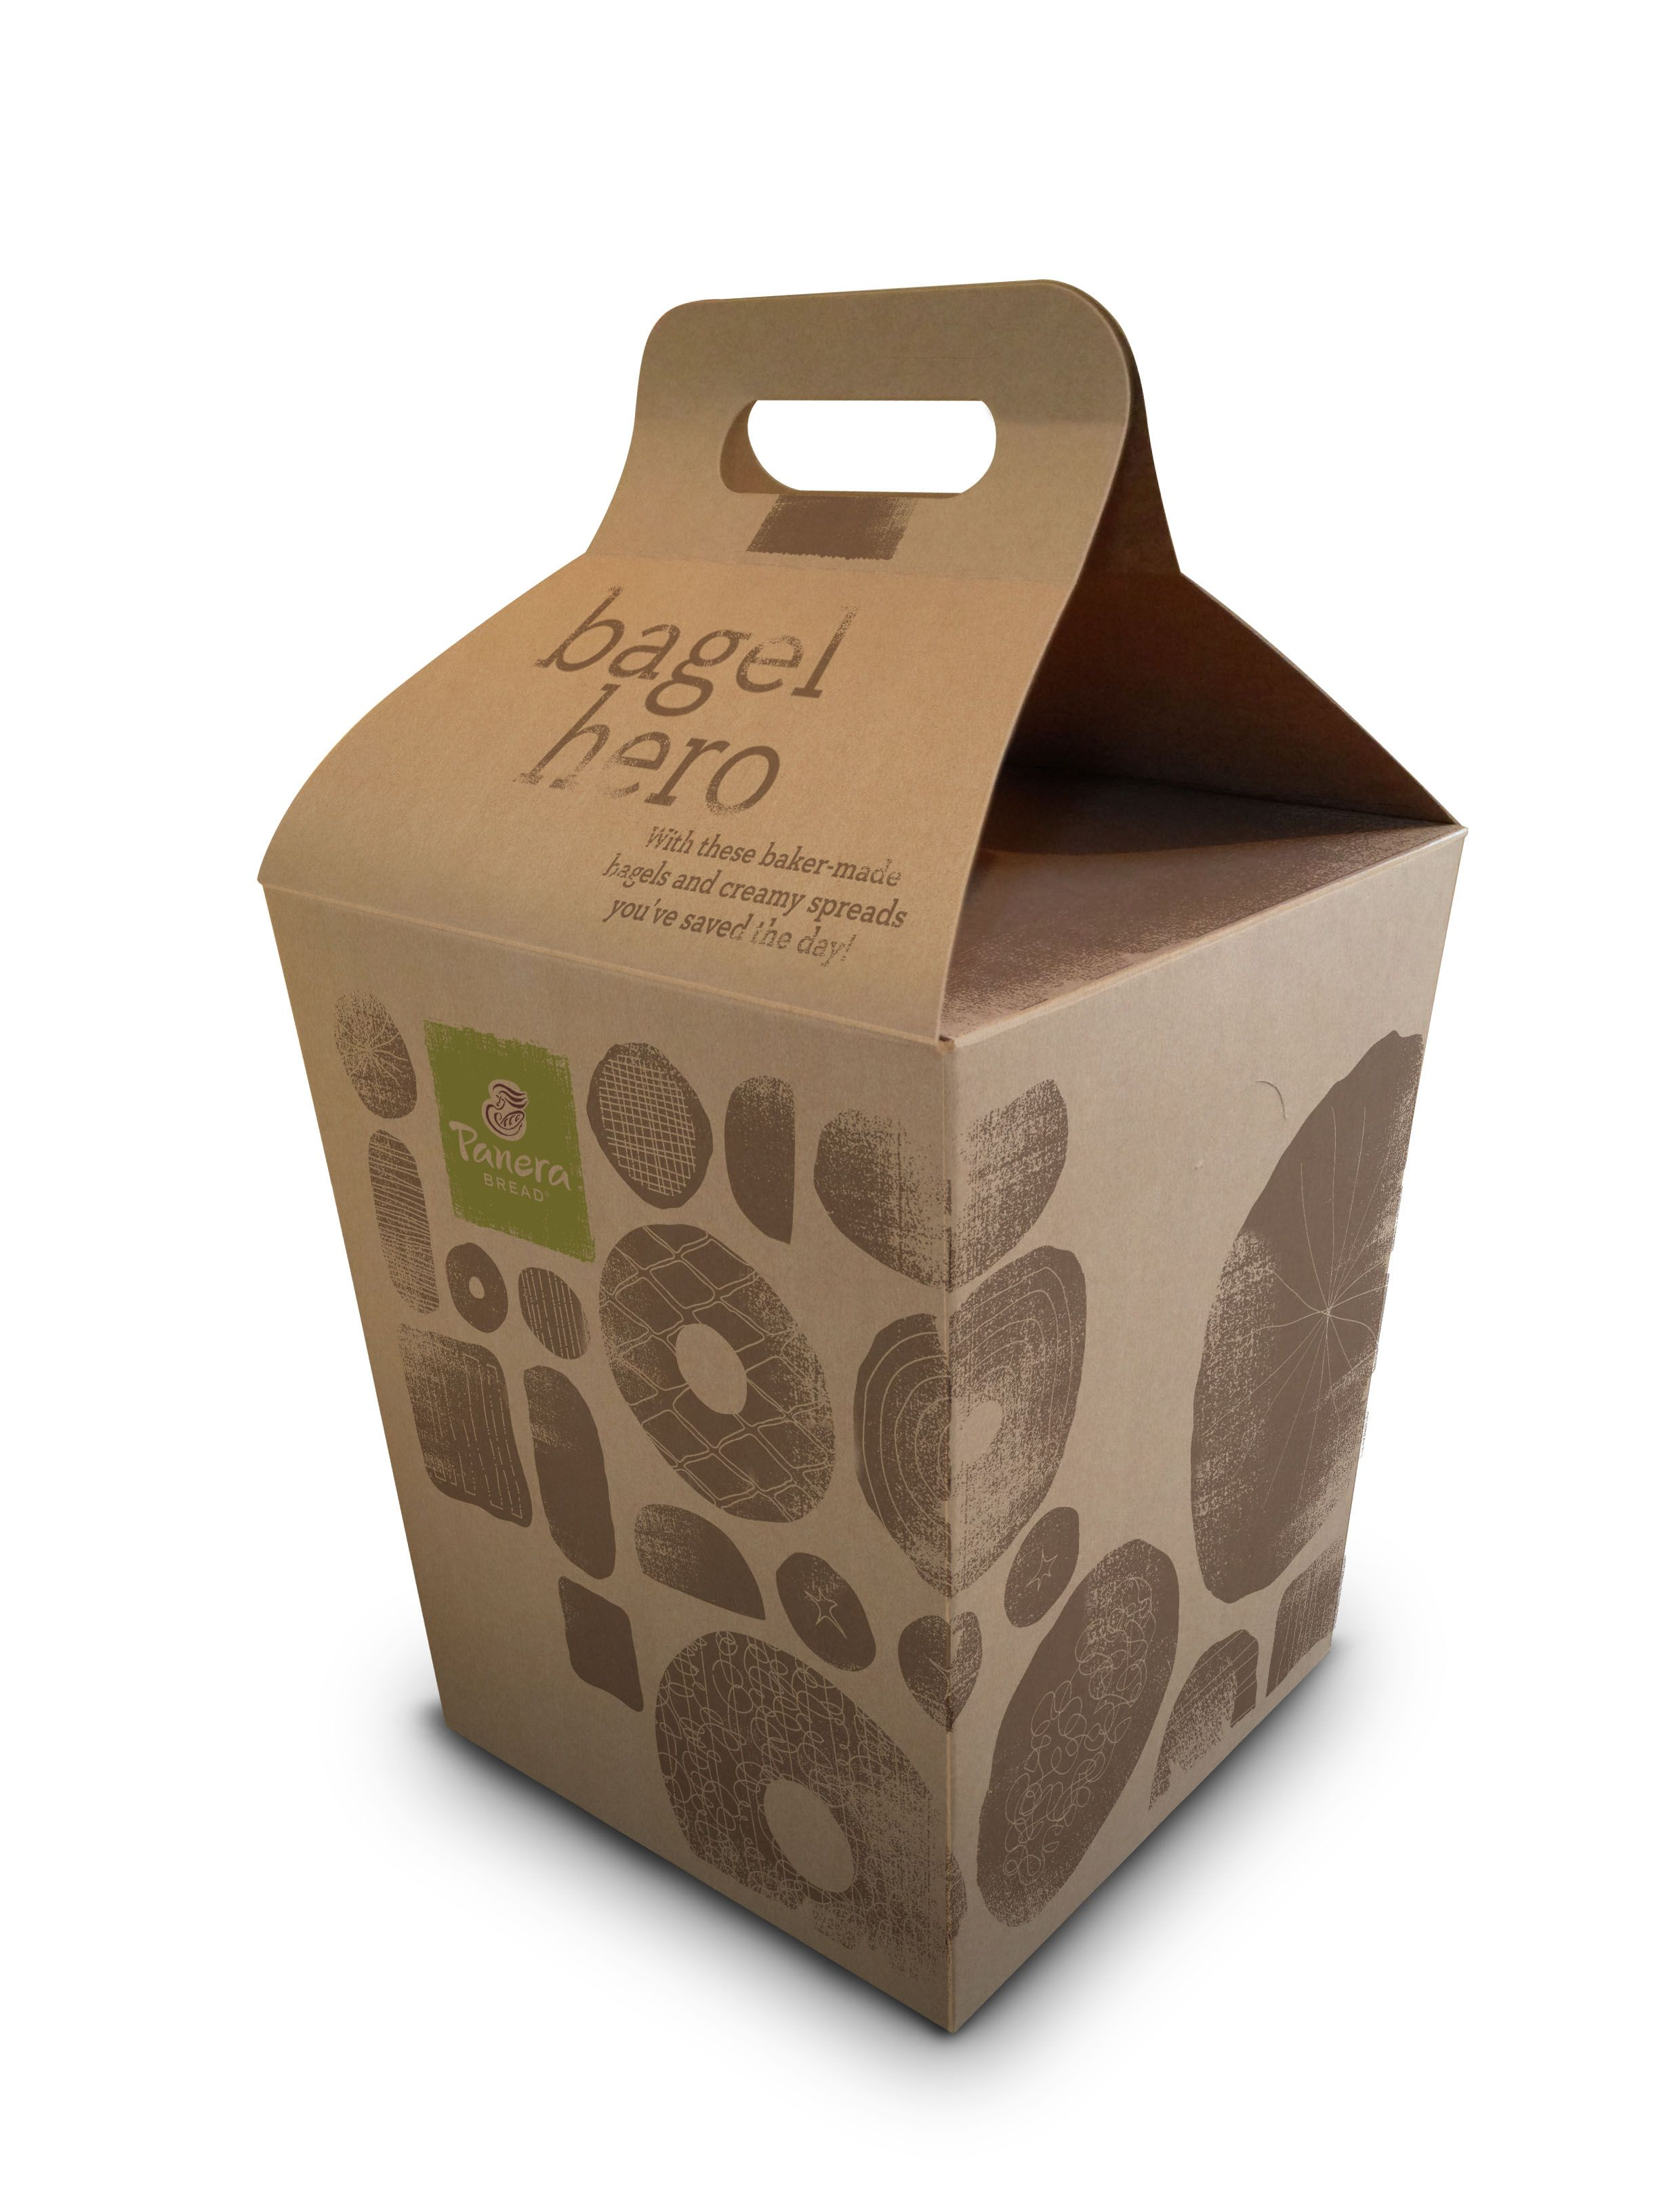 Panera Bread Coffee Box Captivating Mitre Agency  Panera Bread  Packaging  Bagel Pack  Mitre Design Ideas